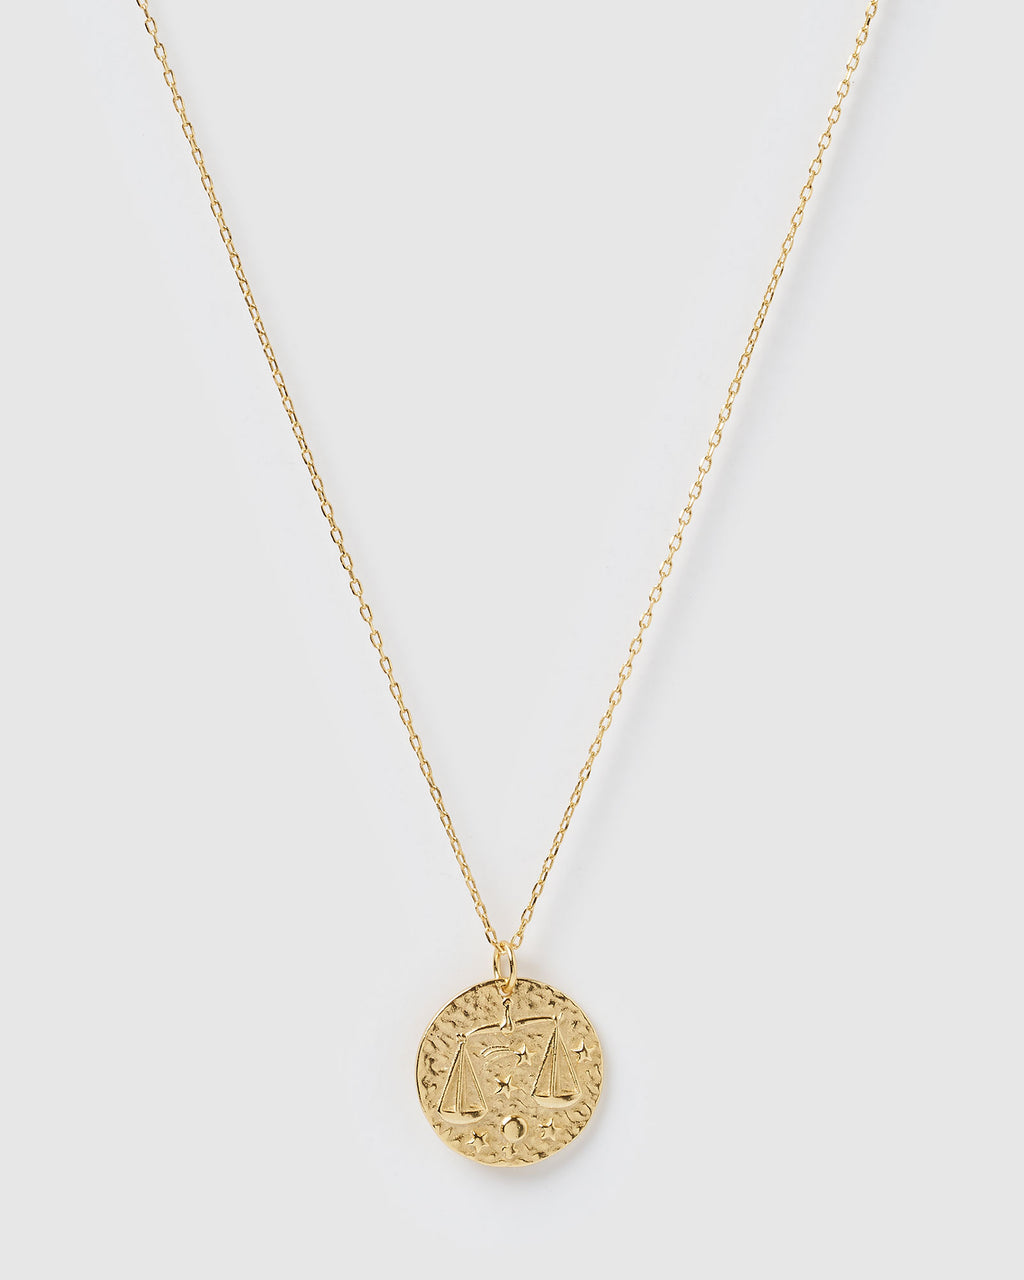 Izoa Star Sign Necklace Libra Gold